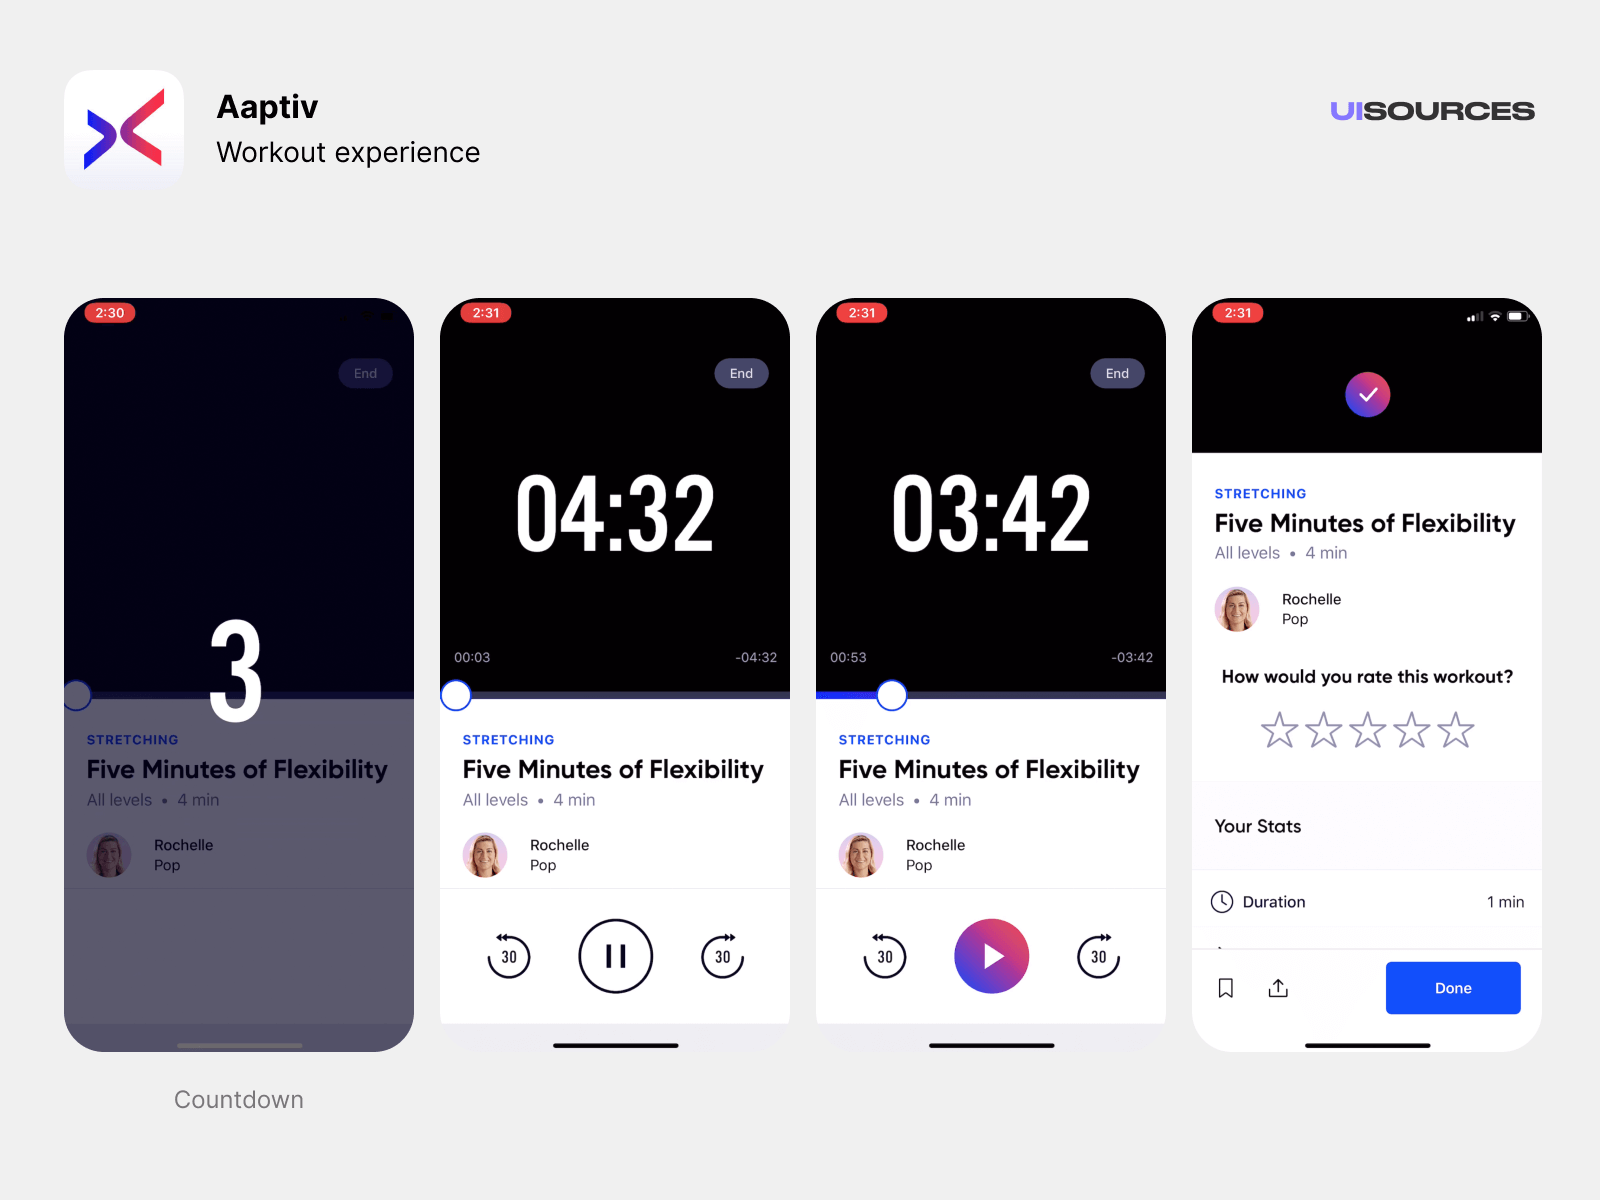 Audio workout experience